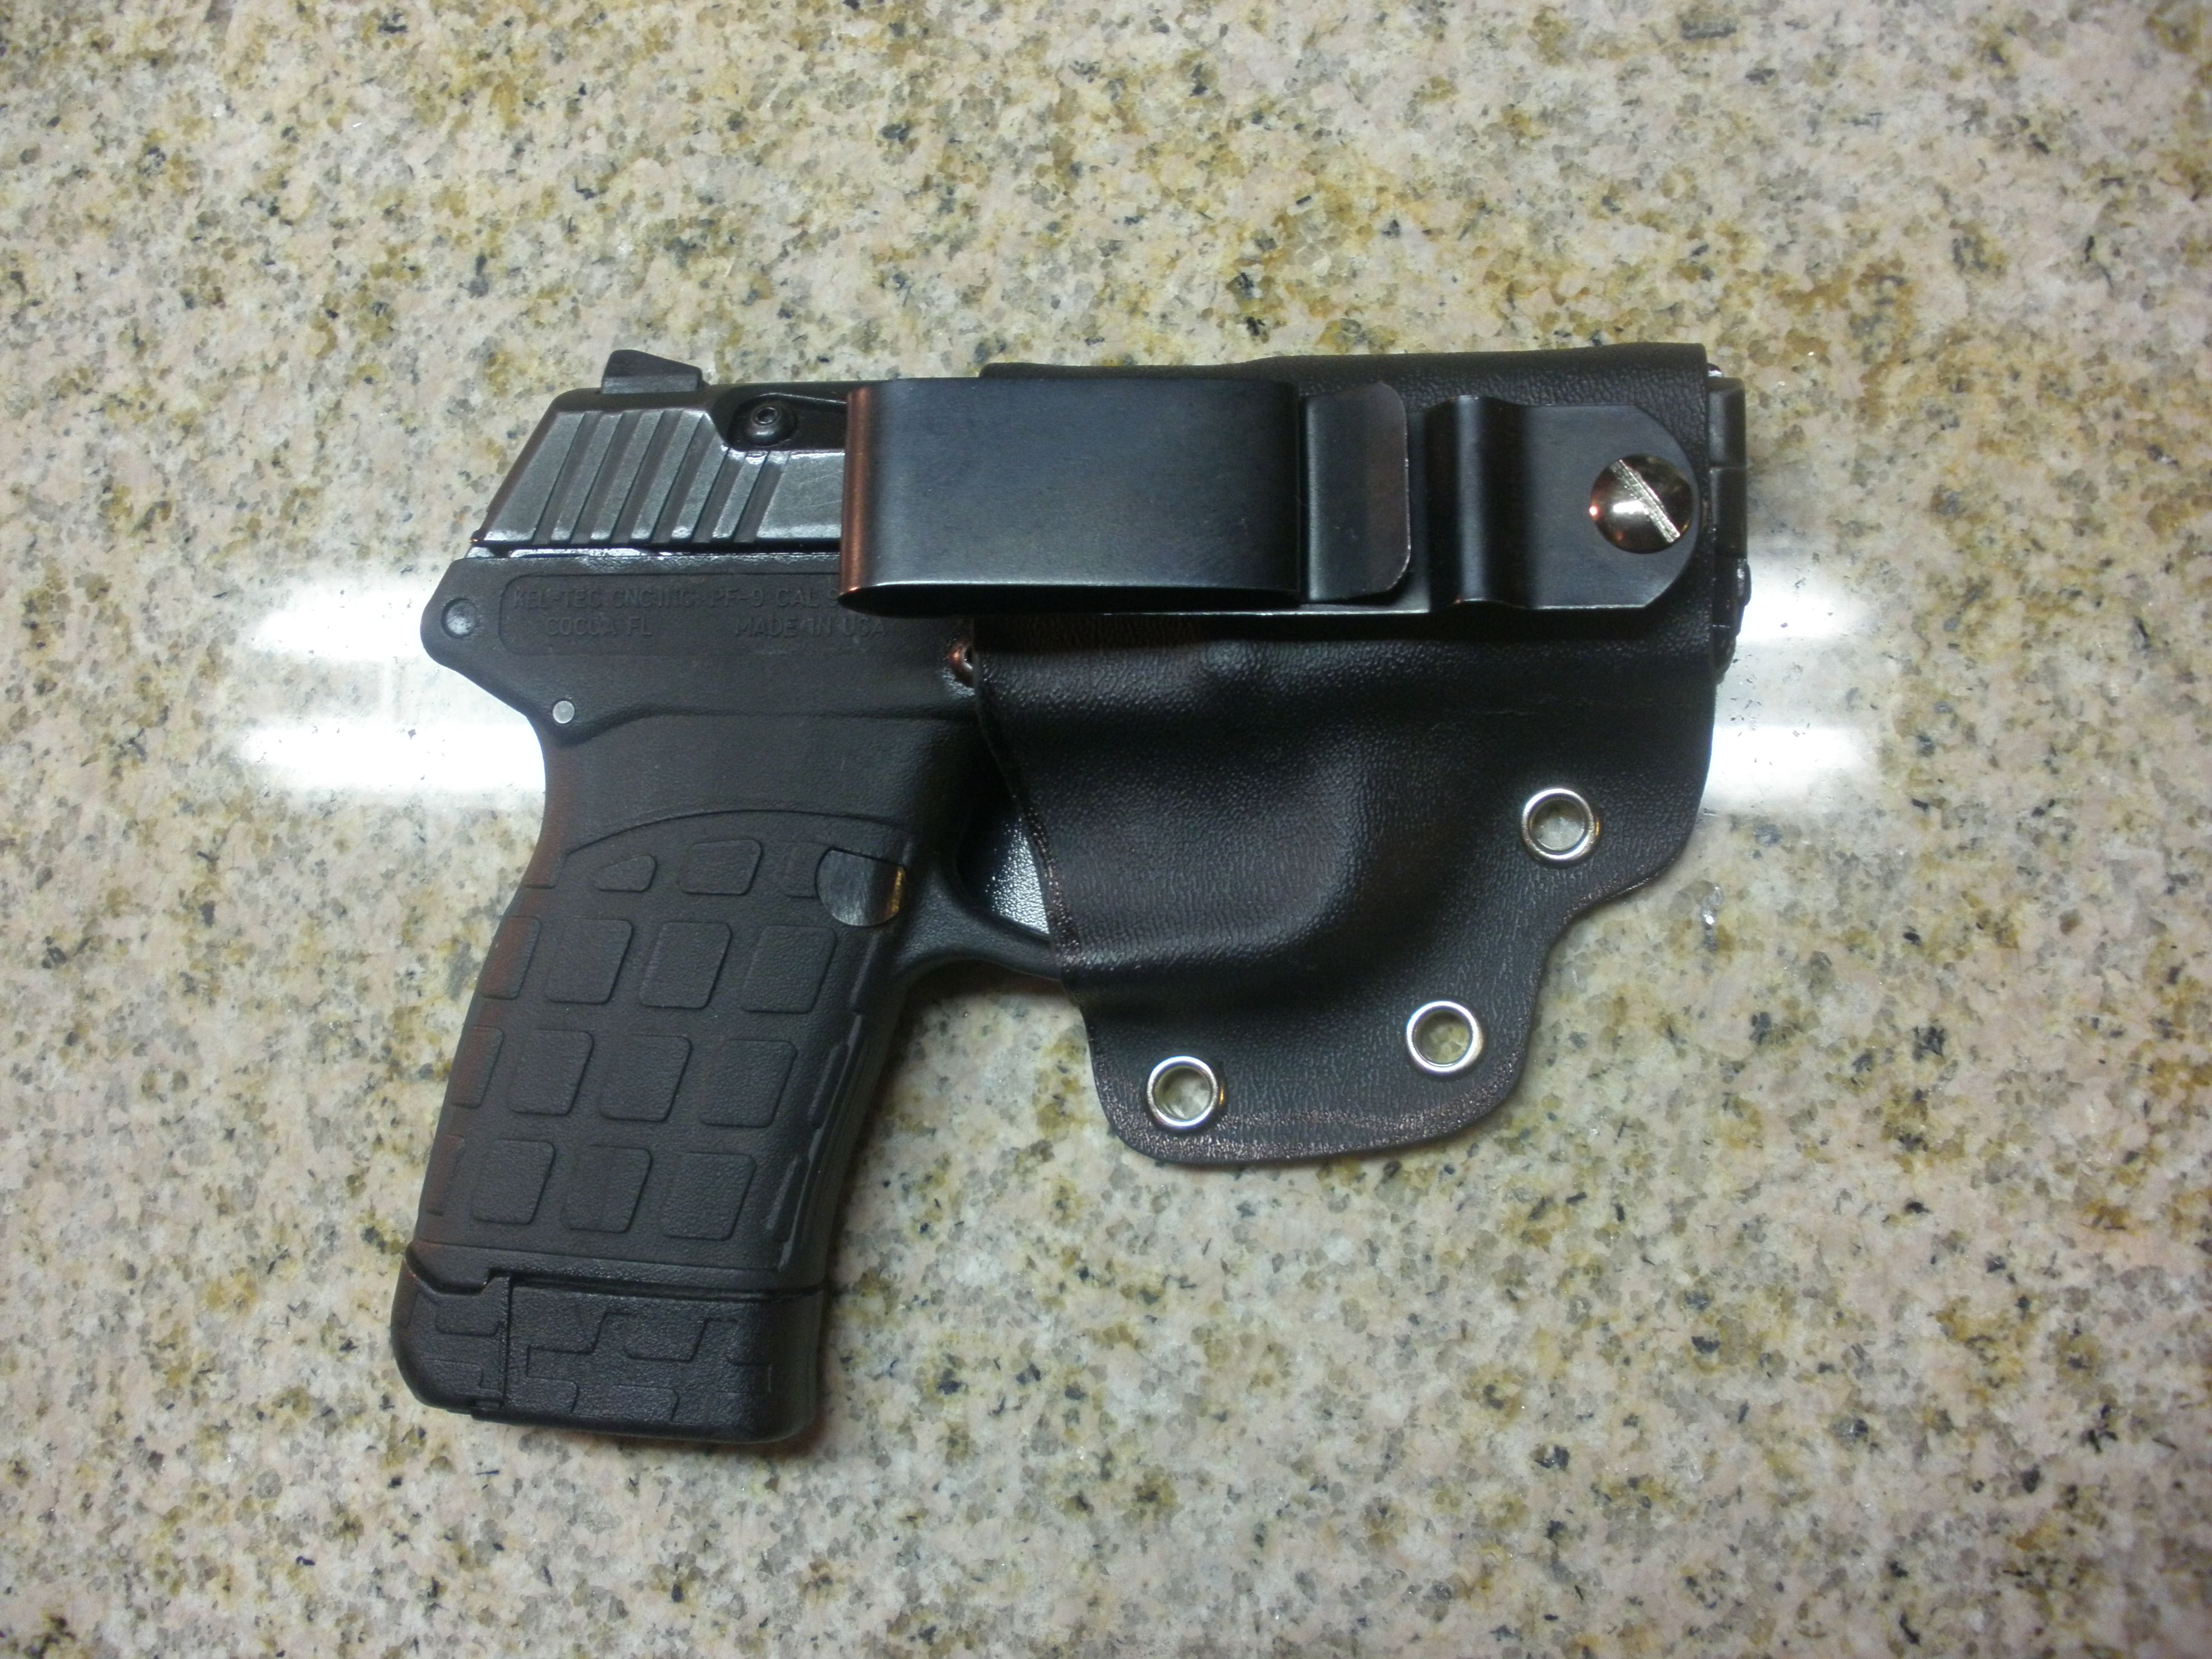 This is a REJck hybrid holster for a Kel-Tec PF-9  Designed for